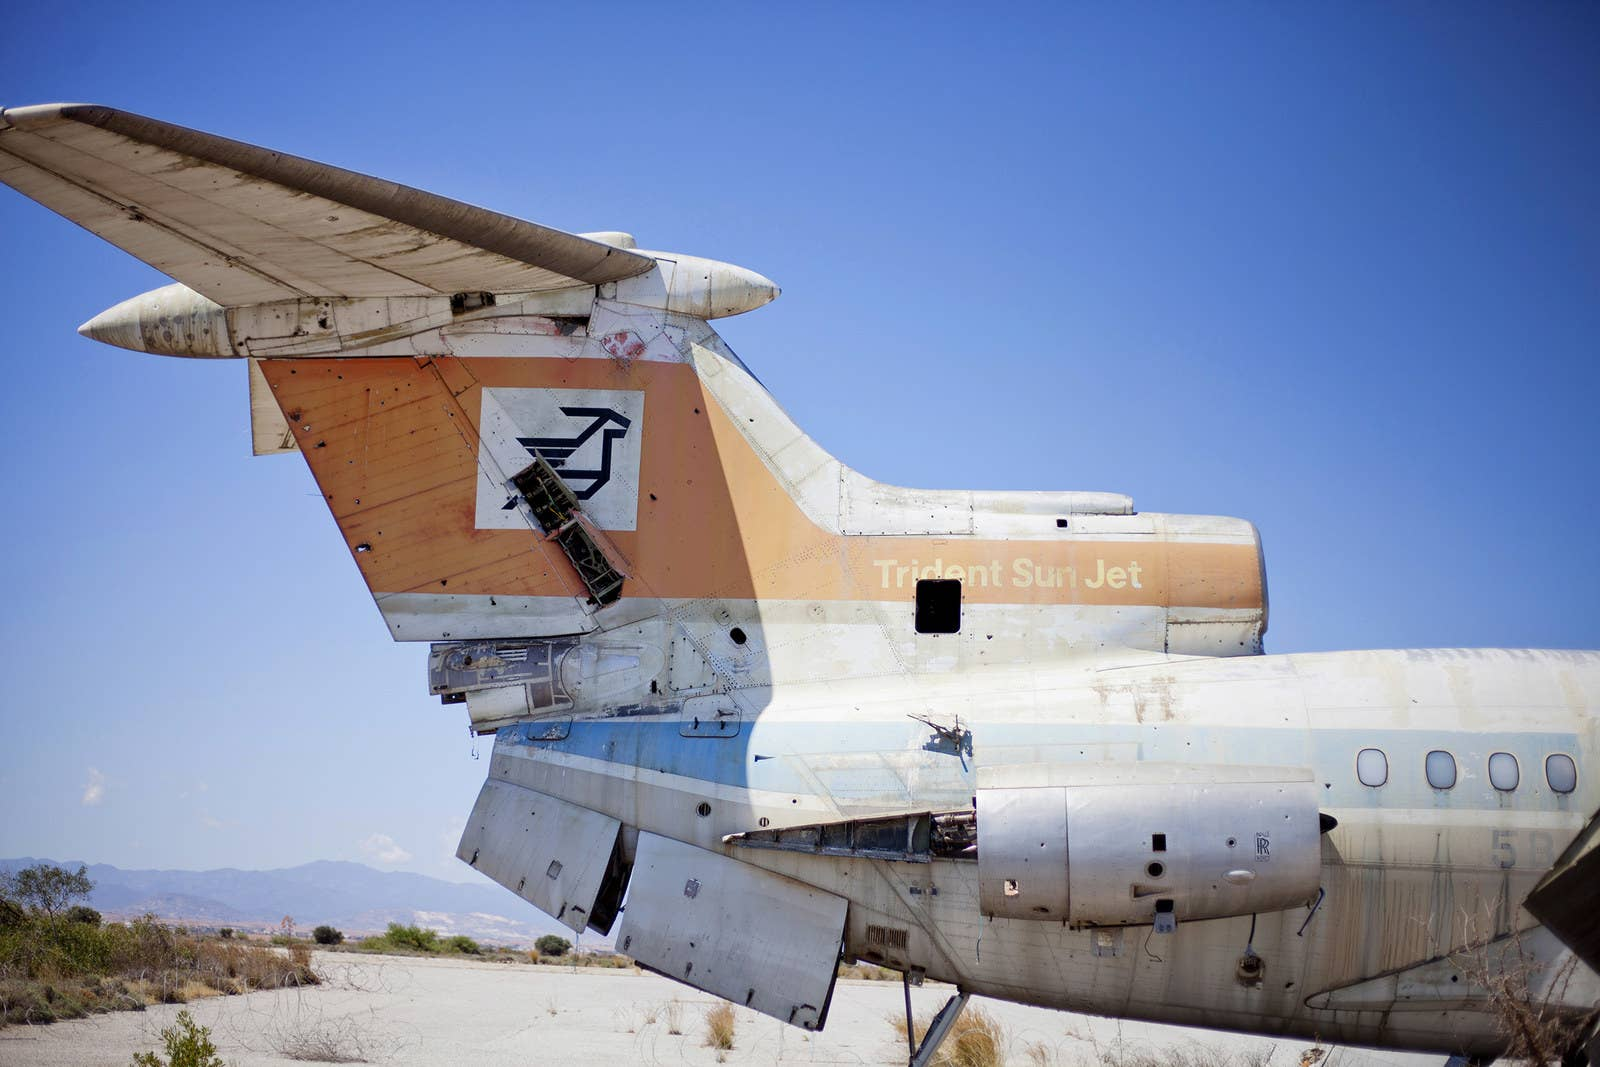 The shell of an airplane sits on the runway, slowly rusting.